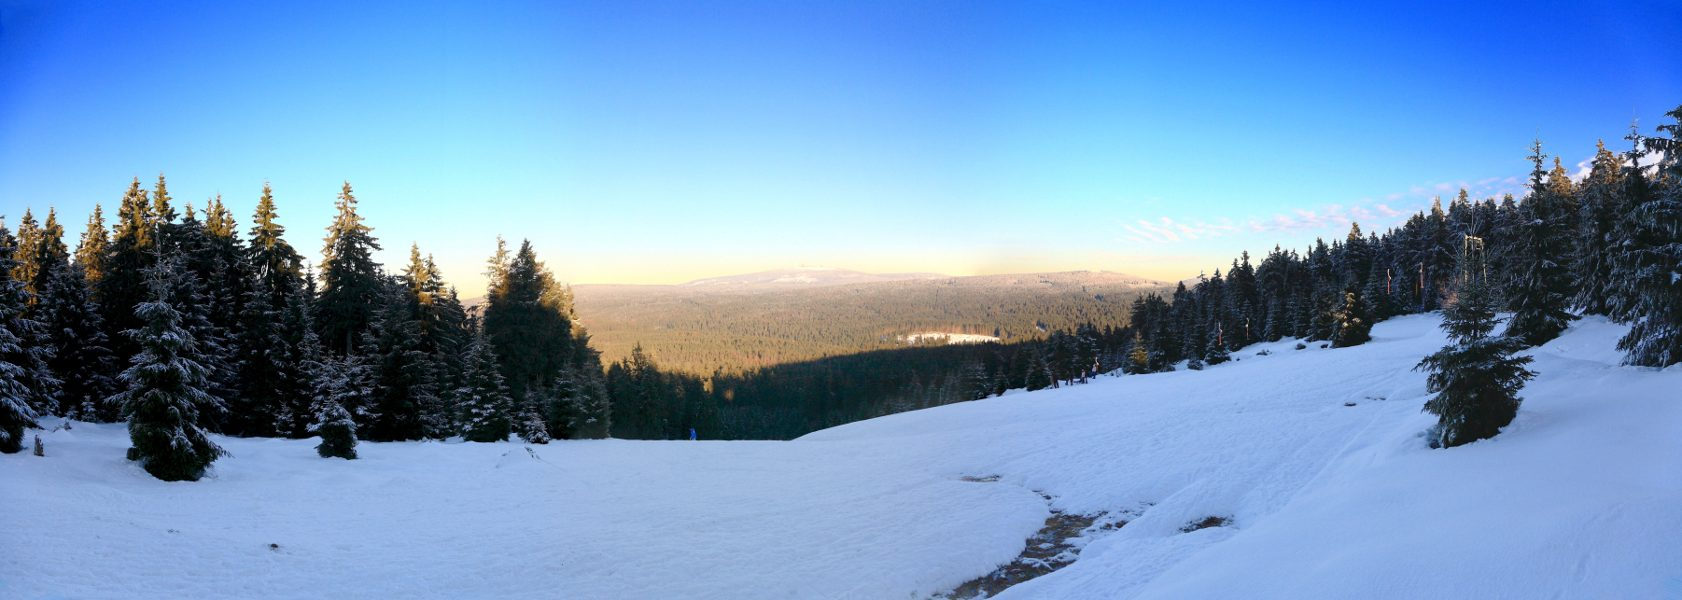 Winterpanorama mit Brockenblick